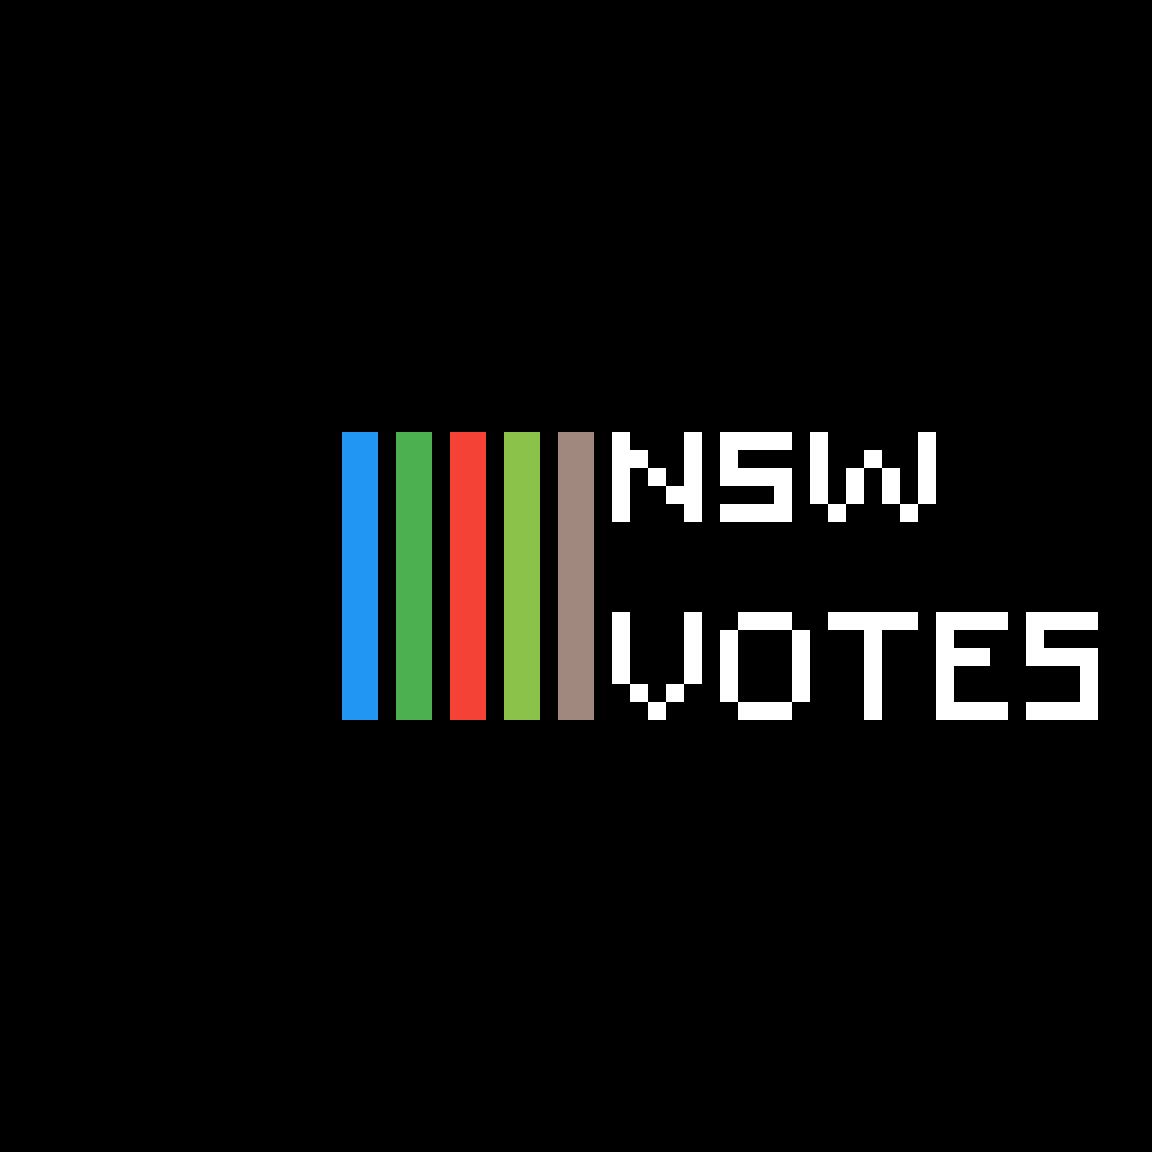 NSW votes by kate29